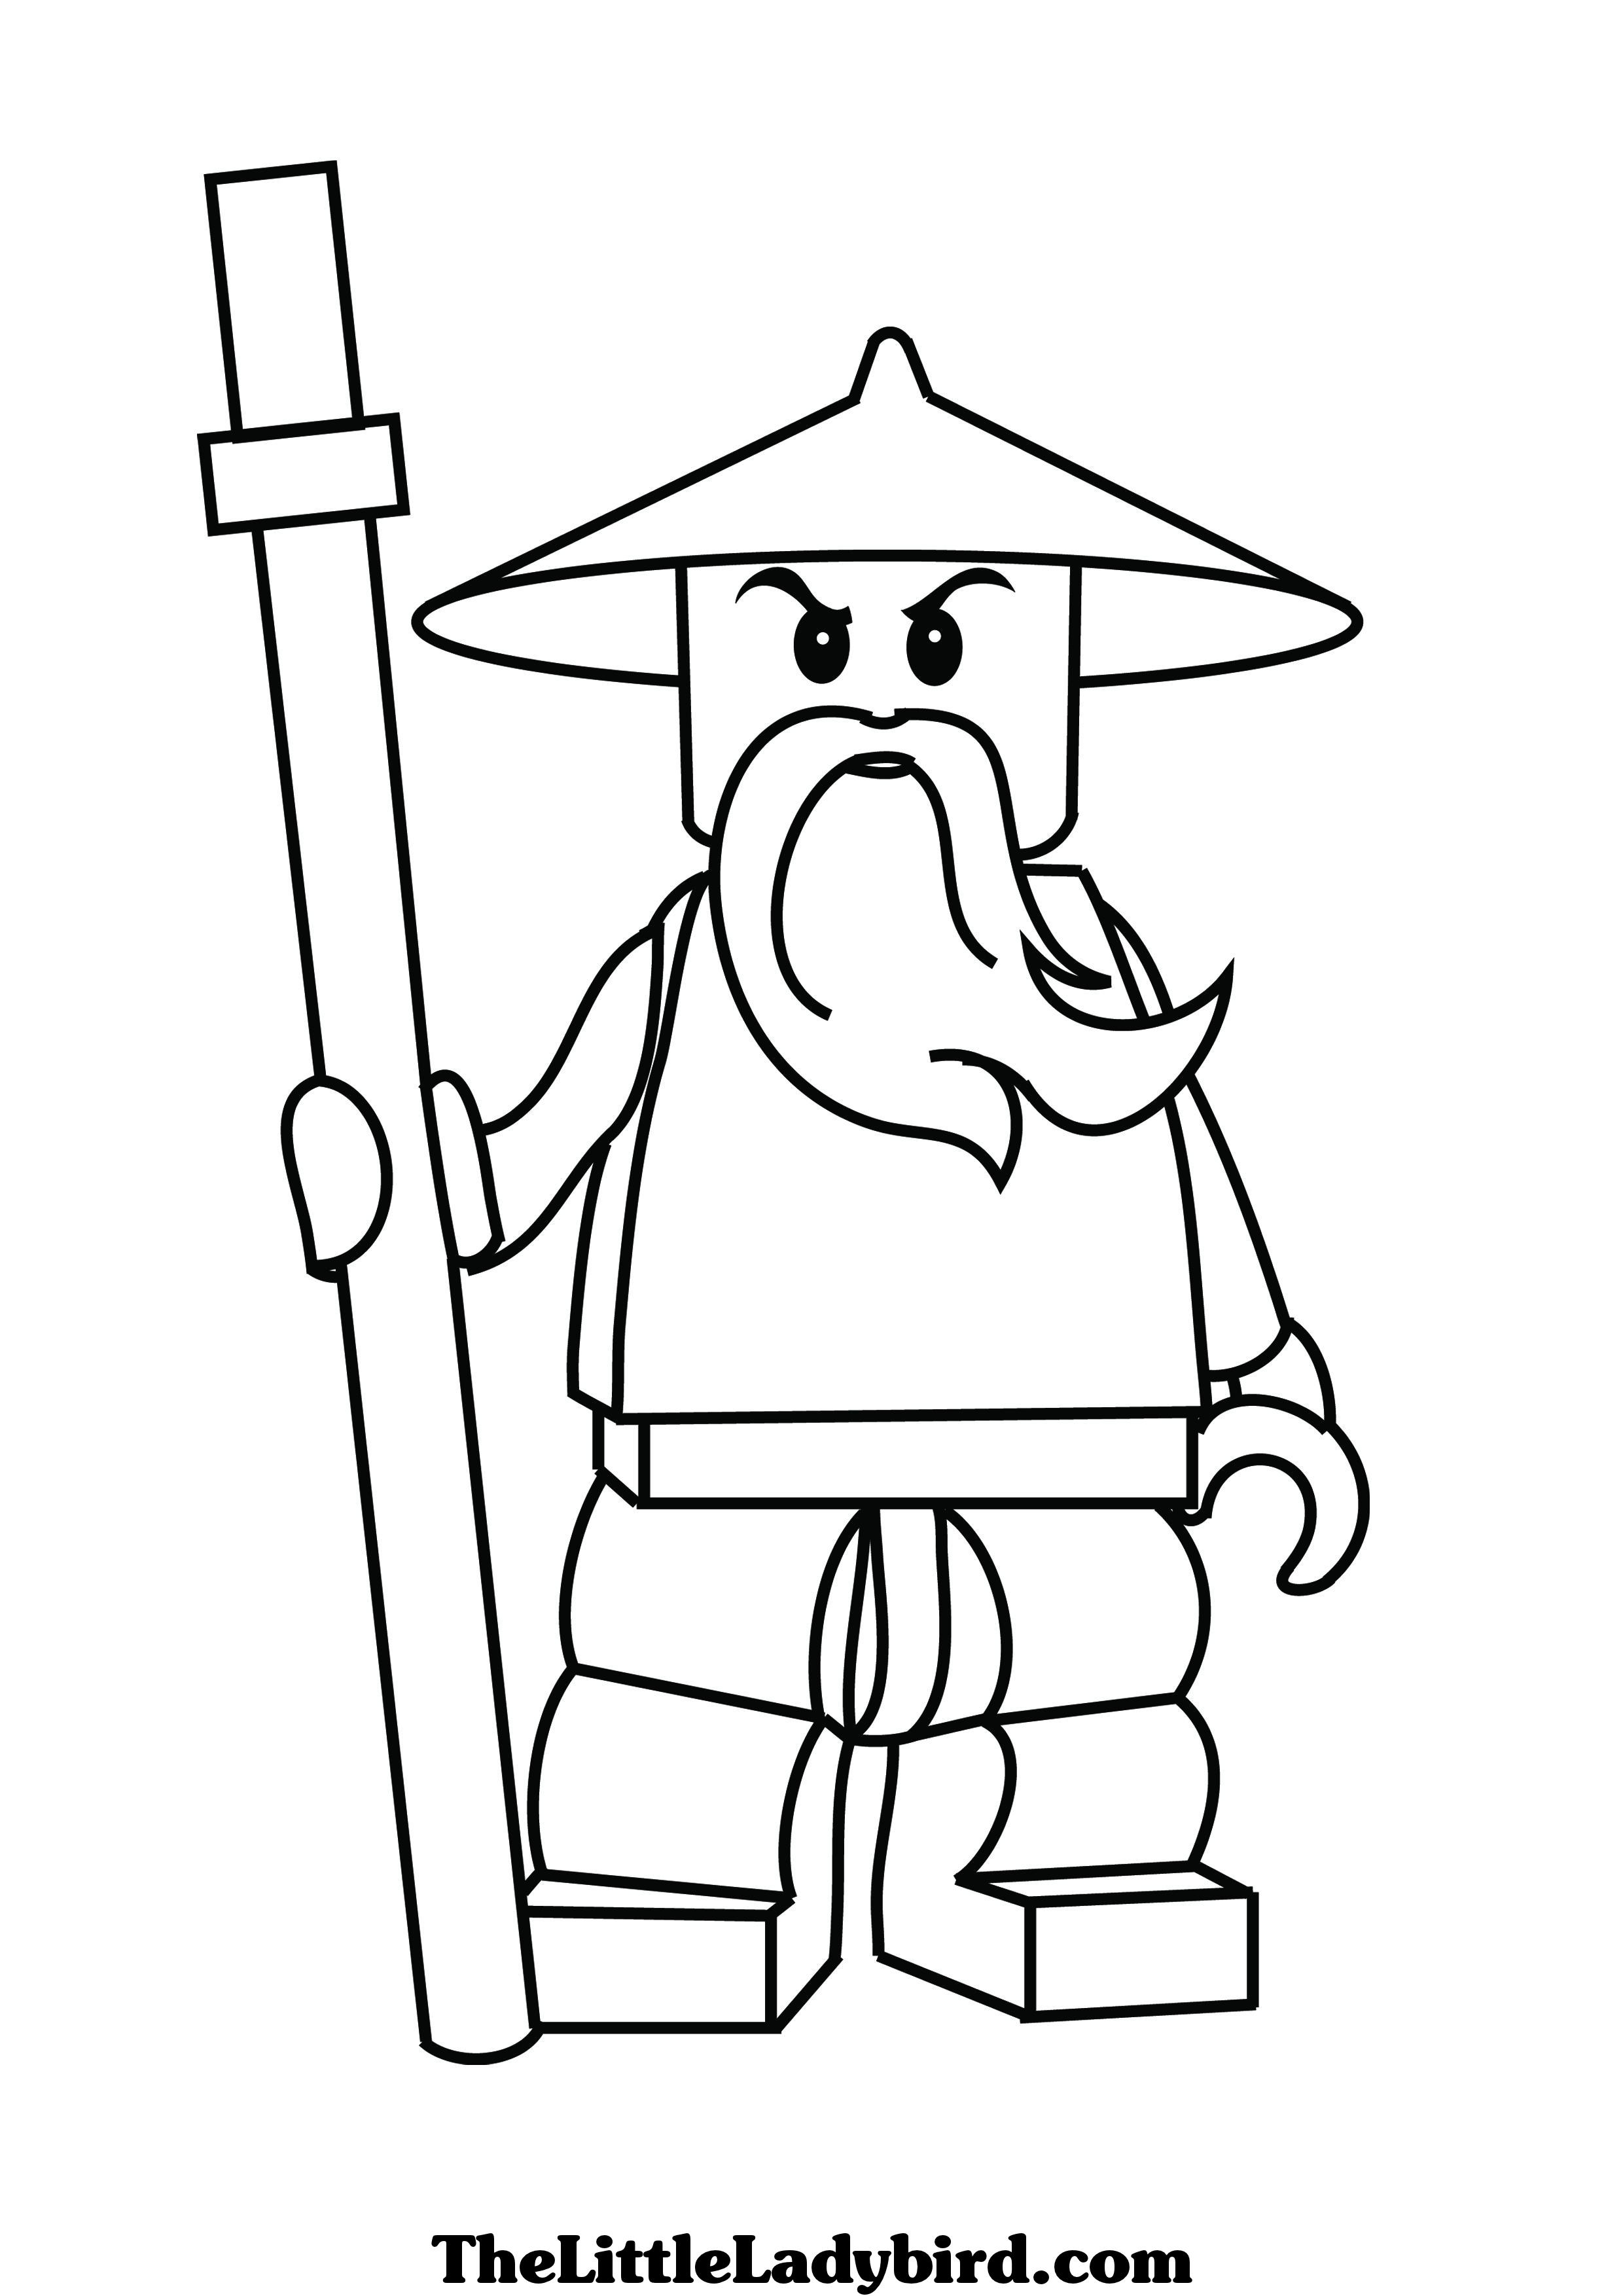 Free Ninjago Serpent Coloring Pages